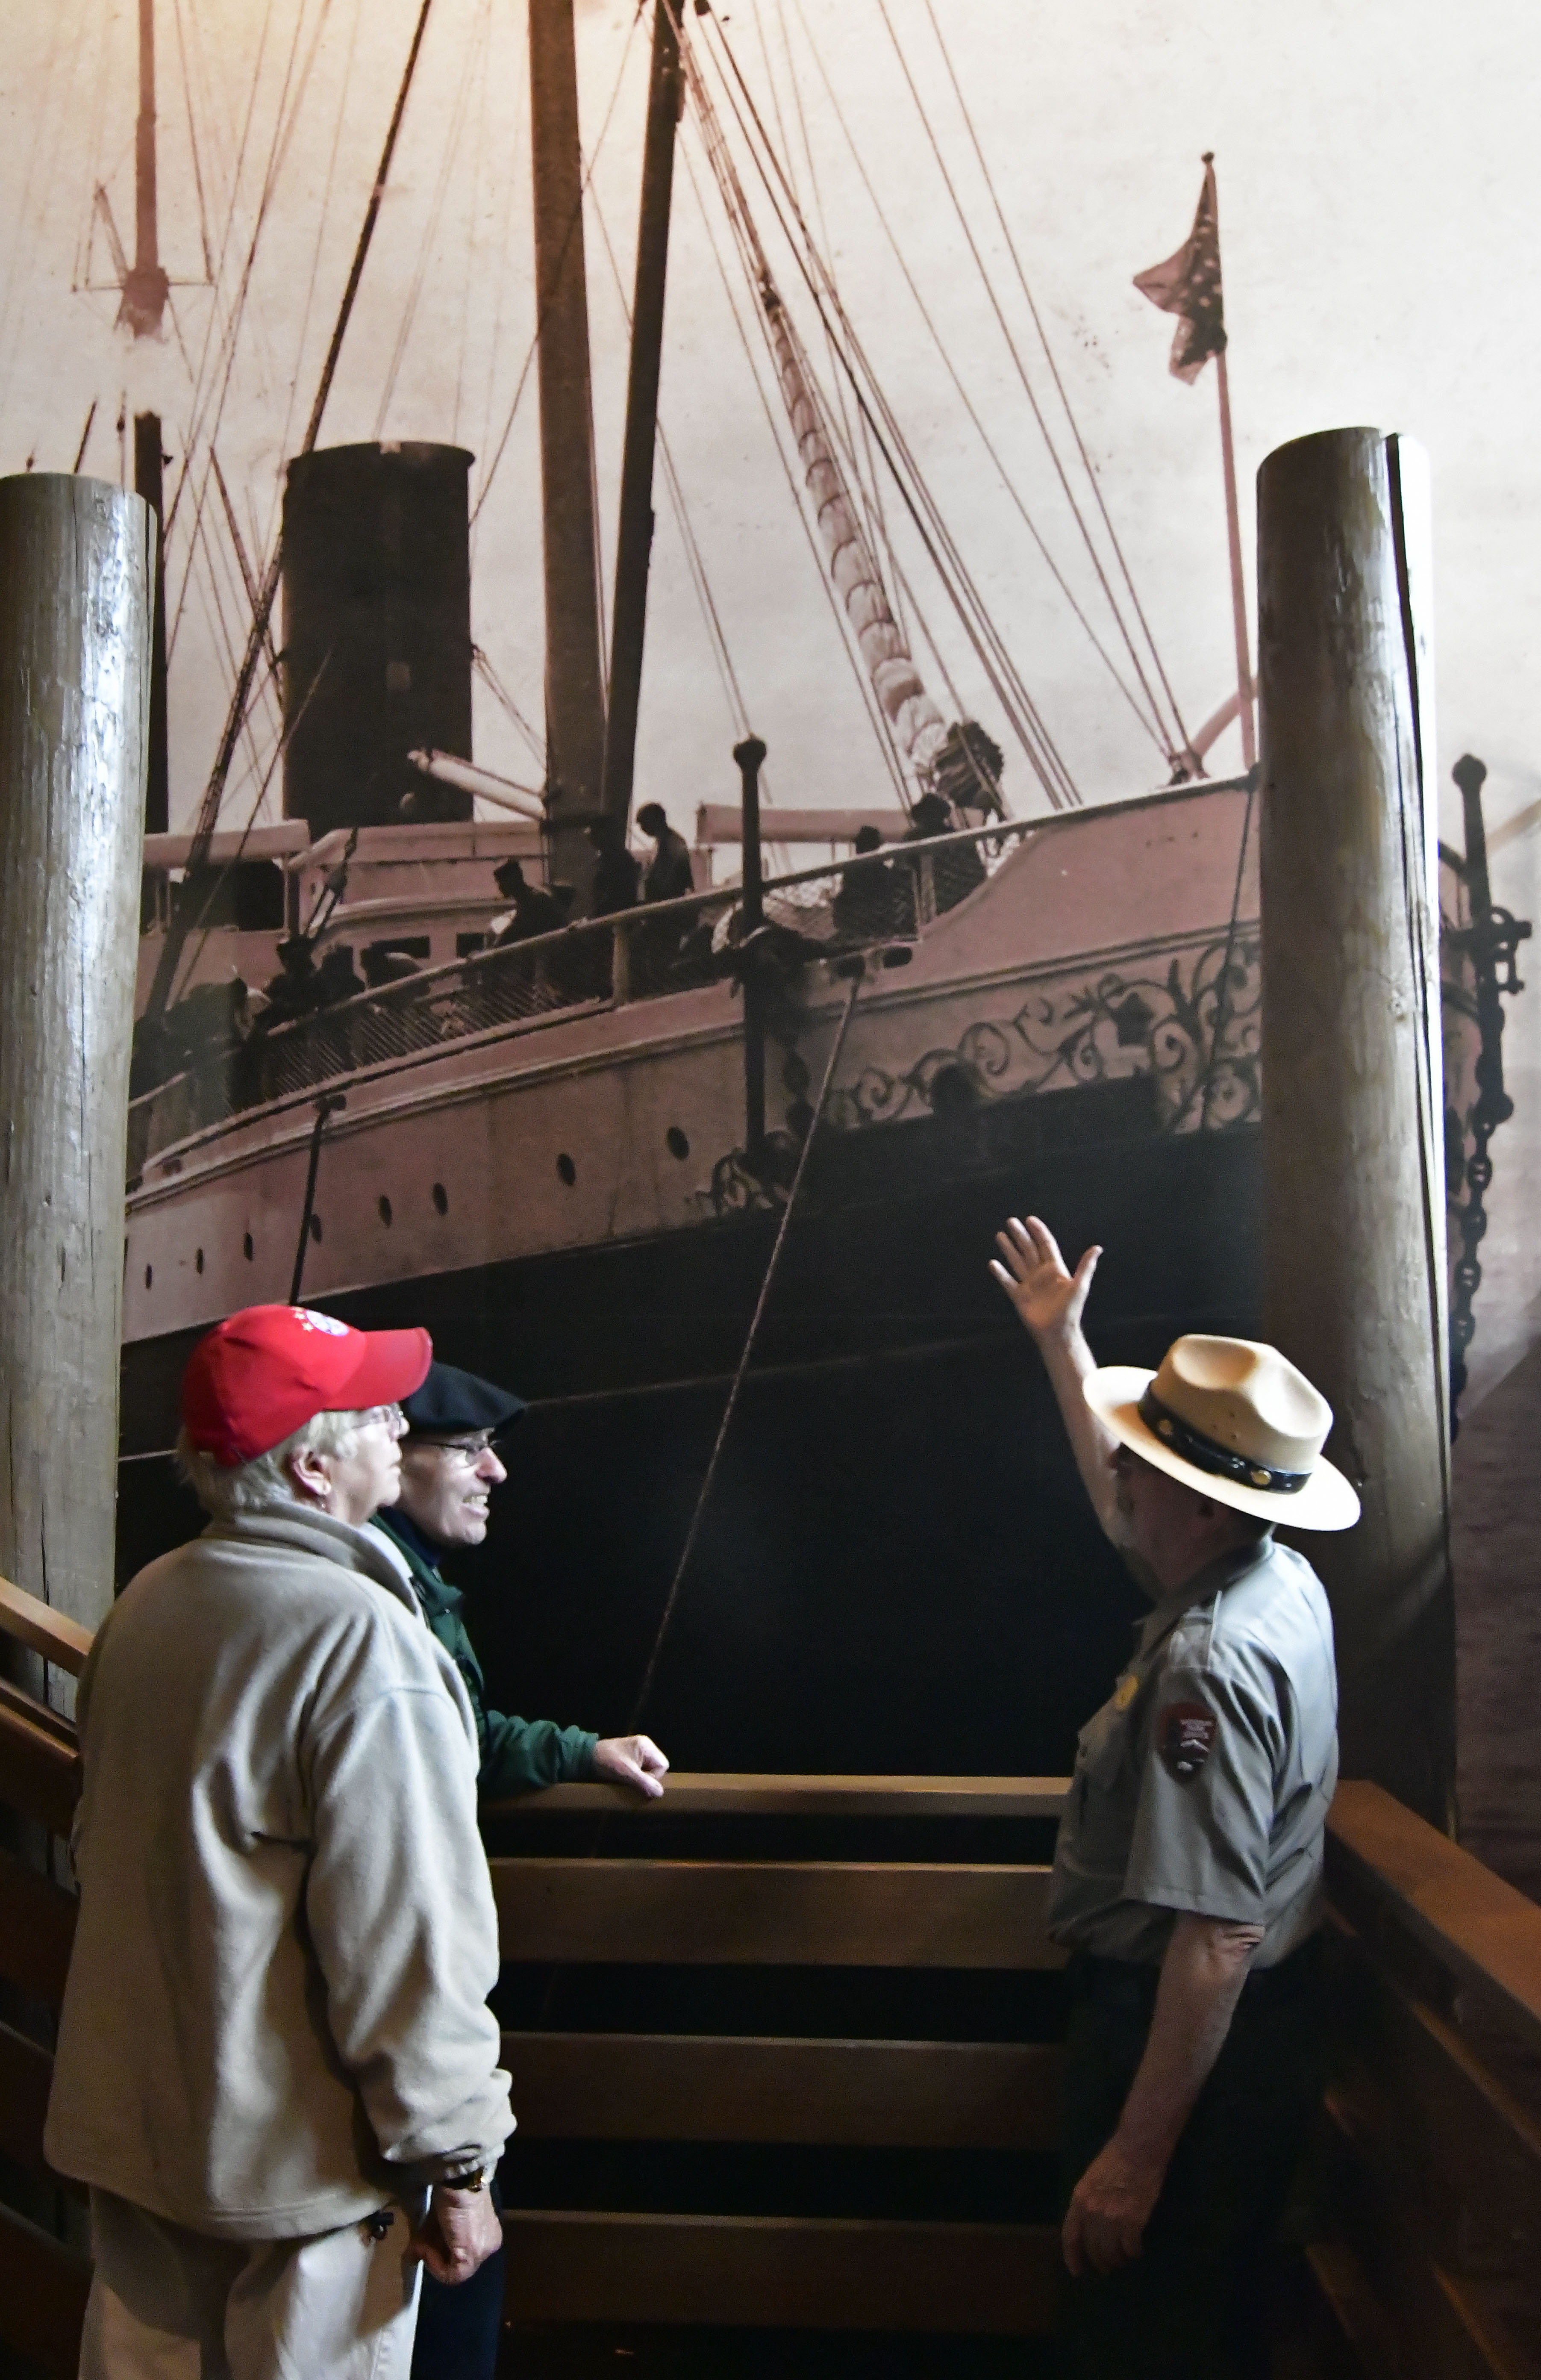 Ranger discussing large photo mural of a period steamship